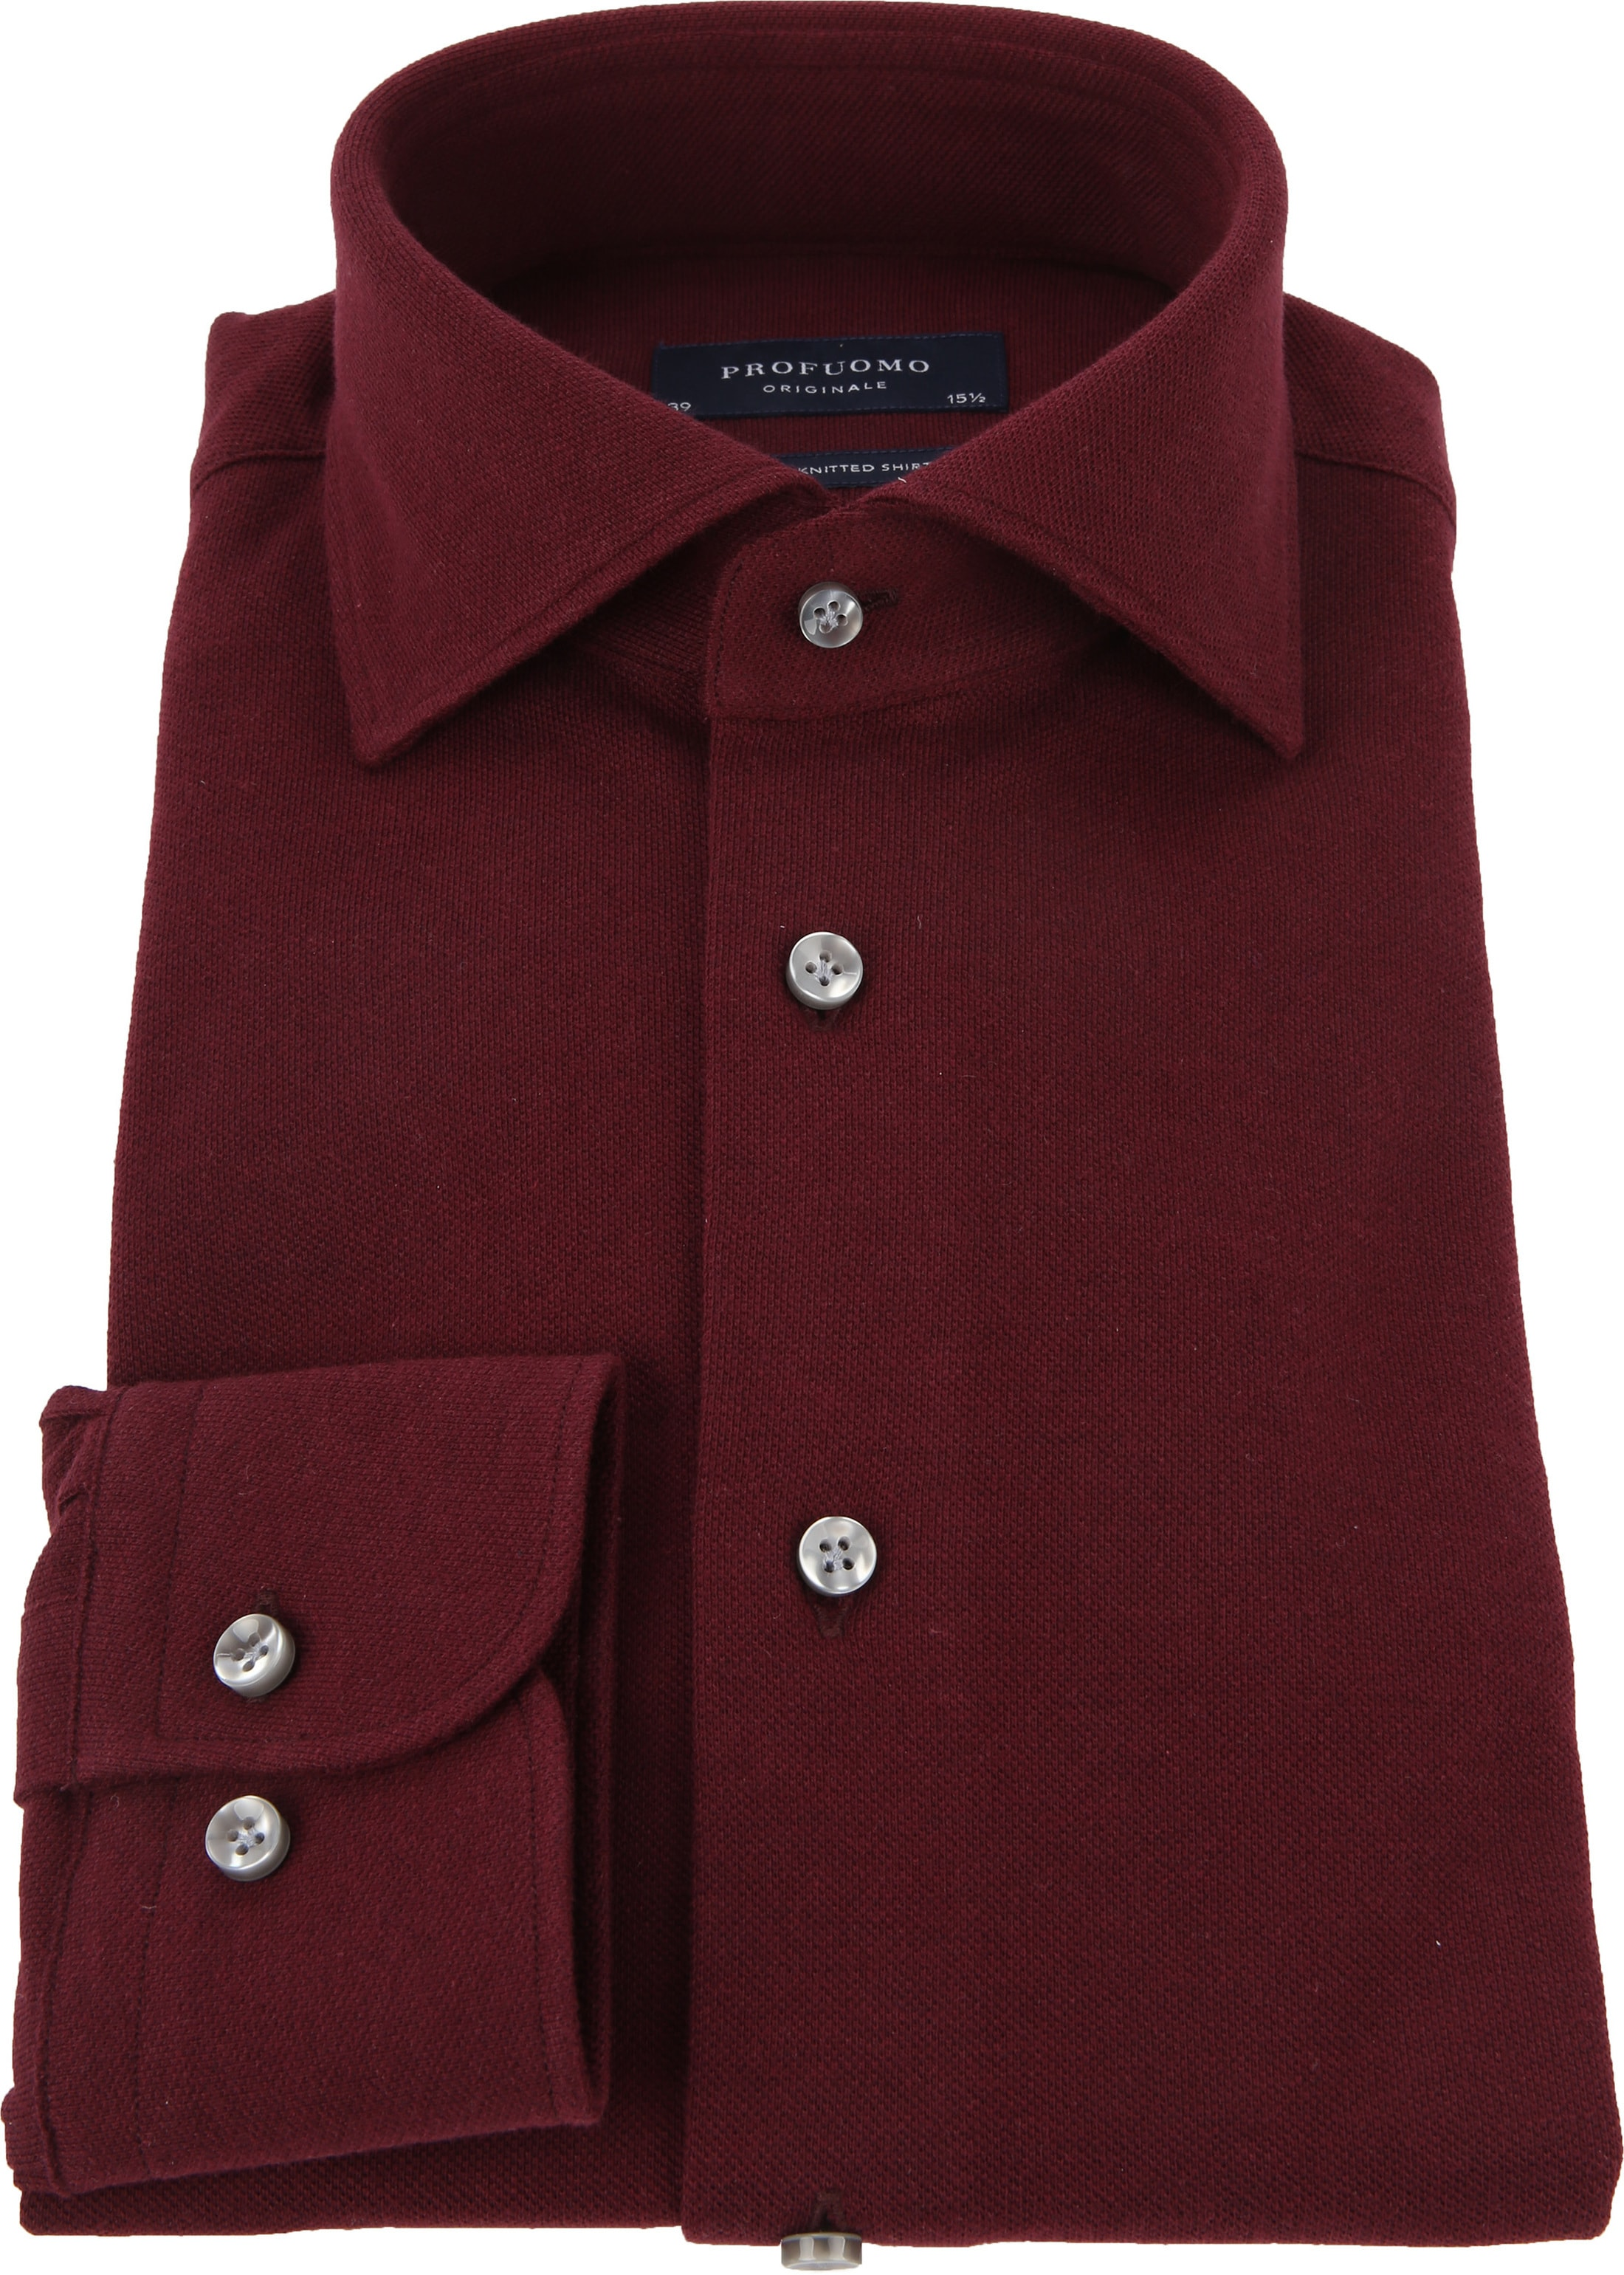 Profuomo Shirt Knitted Bordeaux foto 2